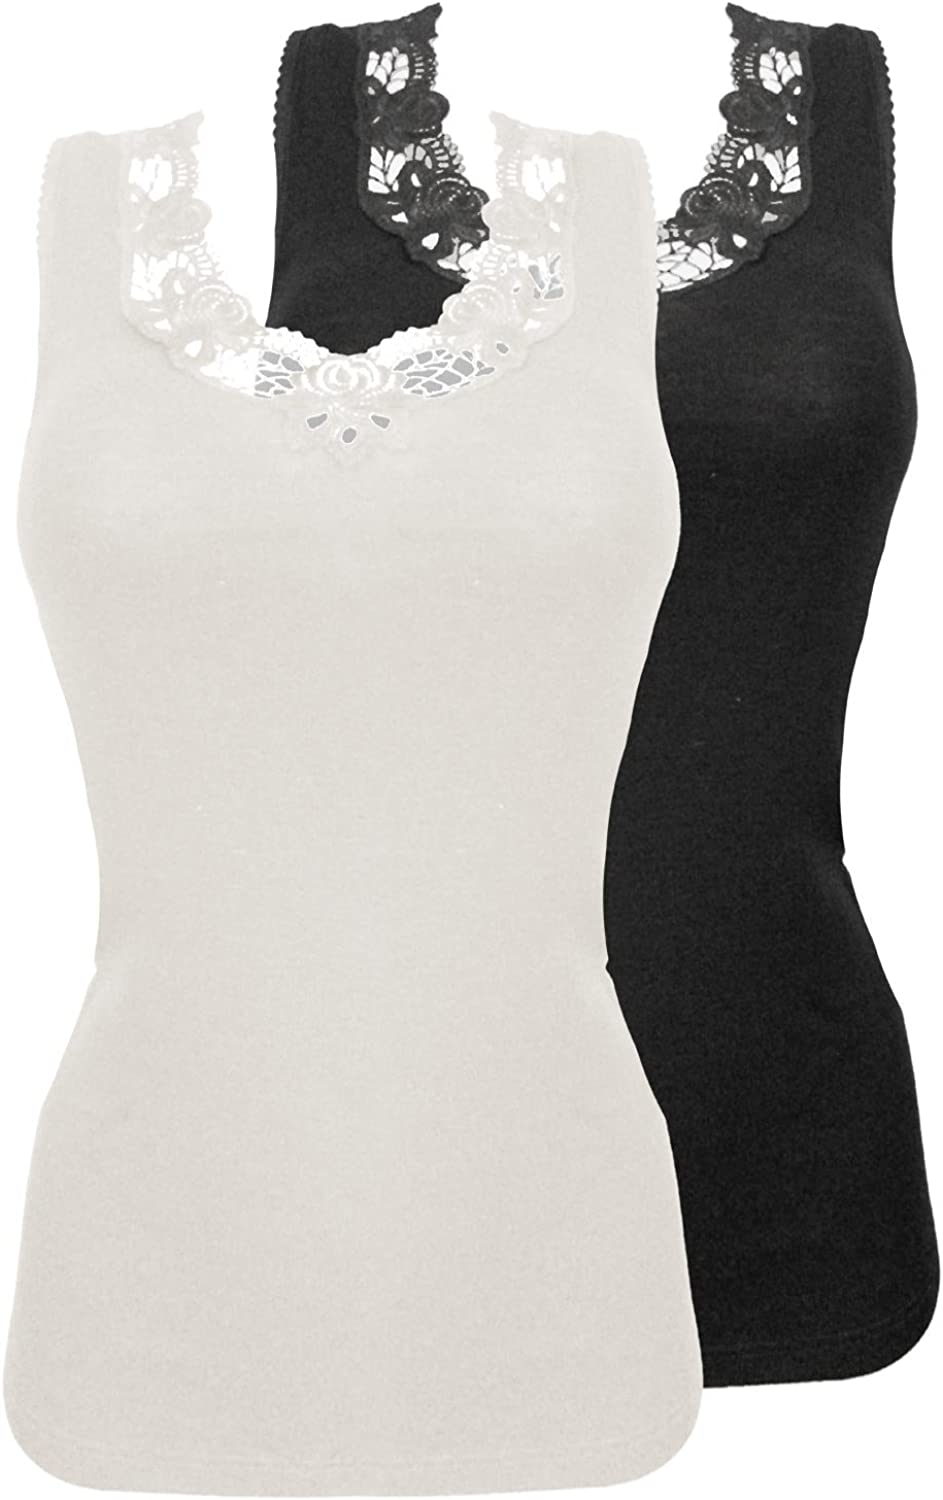 Sangora Pack of 2 Women's Thermal Camisole 7960841